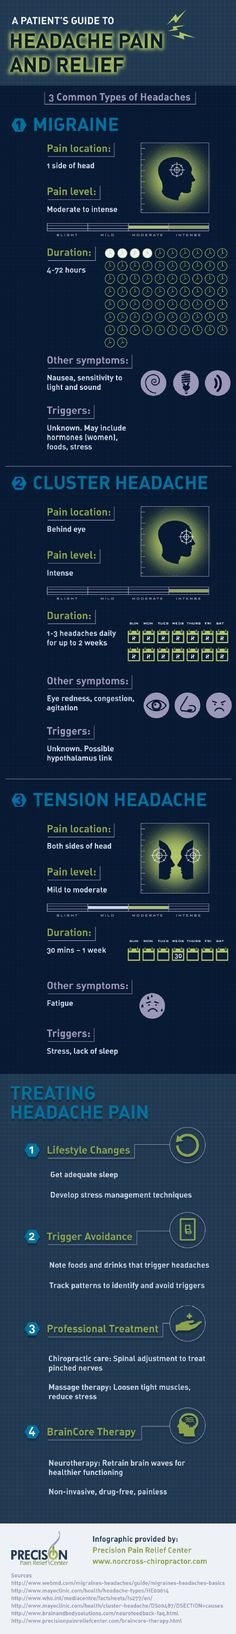 Professional treatment is often a great choice for people who are suffering from constant headaches. This type of treatment can include chiropractic care and massage therapy. Migraine Pain, Chronic Migraines, Migraine Relief, Fibromyalgia, Migraine Triggers, Chronic Illness, Chronic Pain, Headache Behind Eyes, Migraine